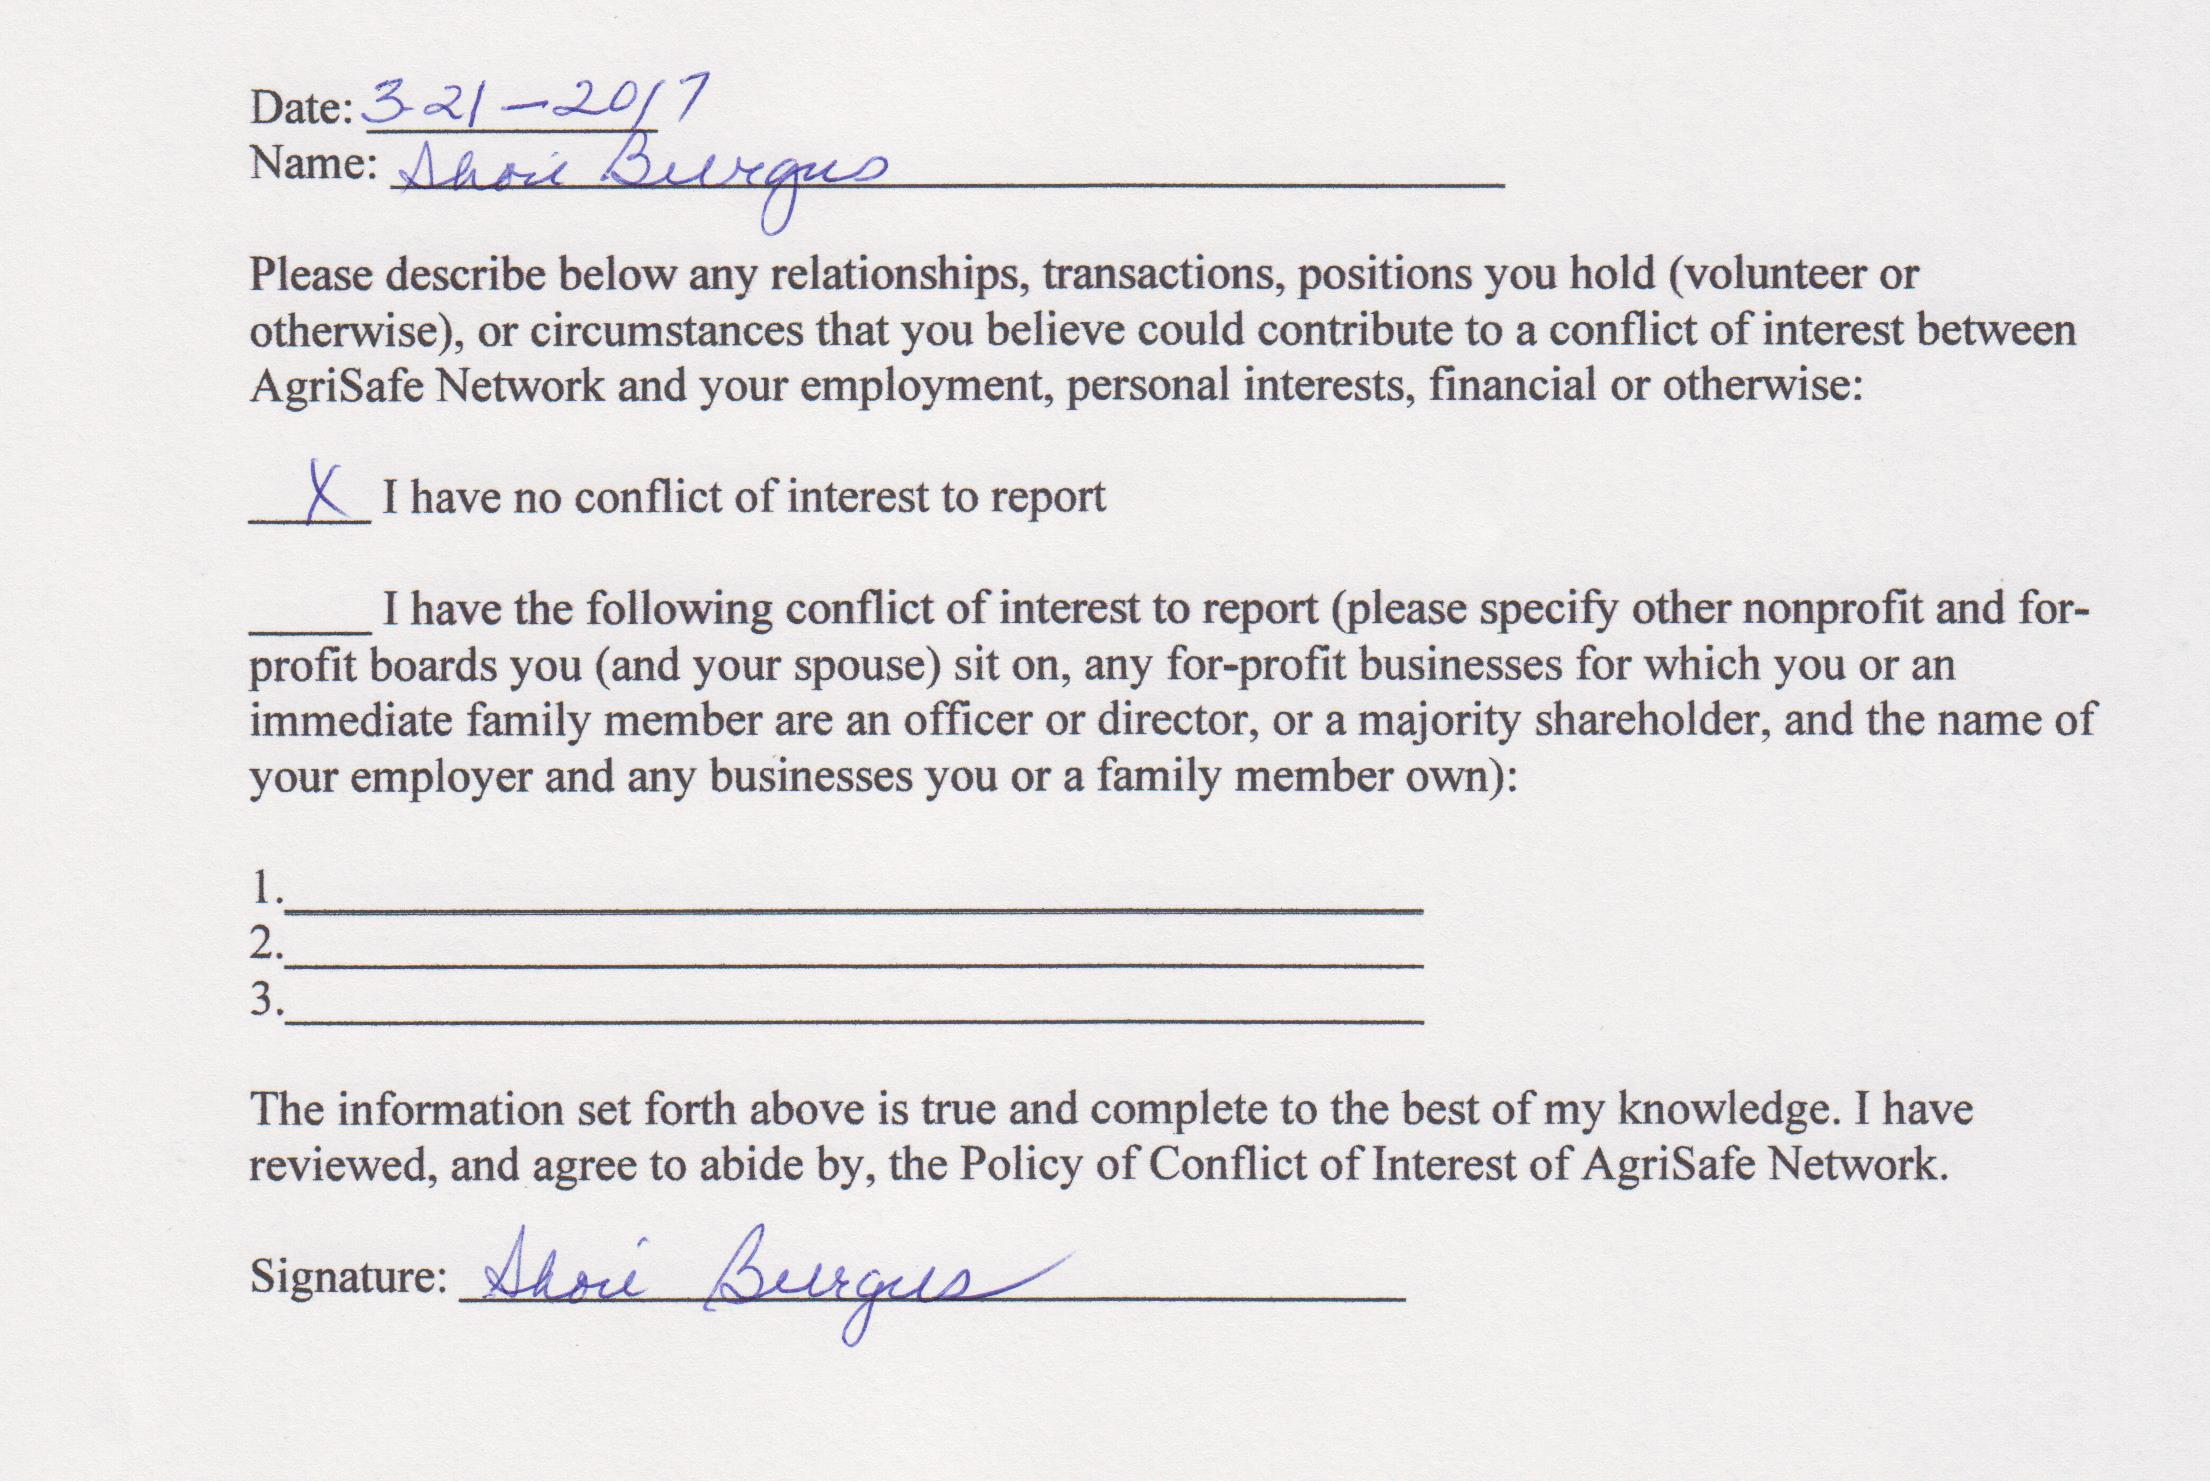 Board of directors conflict of interest form 1betcityfo Choice Image